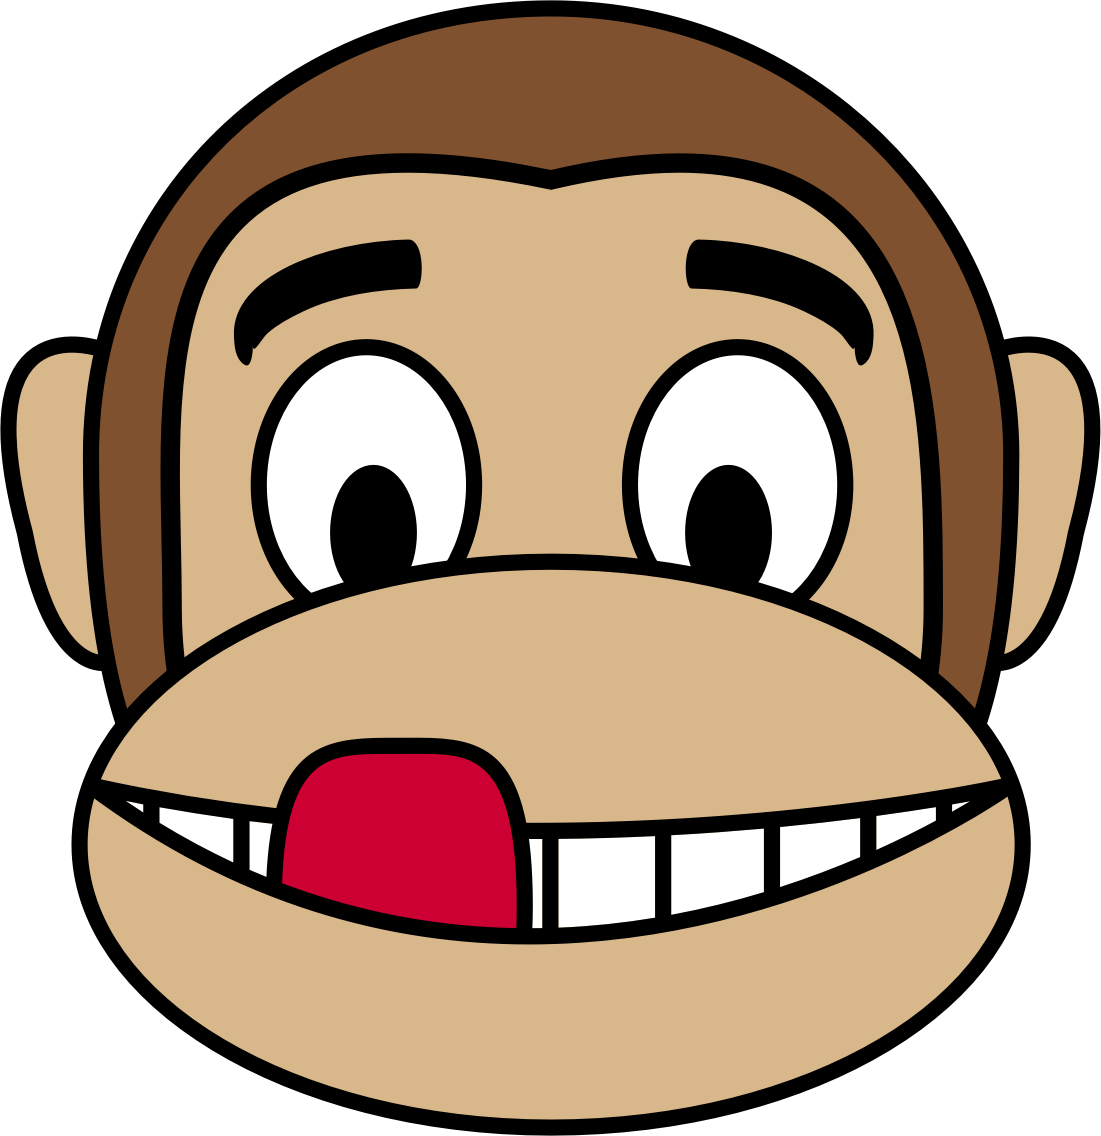 1101x1136 Collection Of Monkey Emoji Clipart High Quality, Free